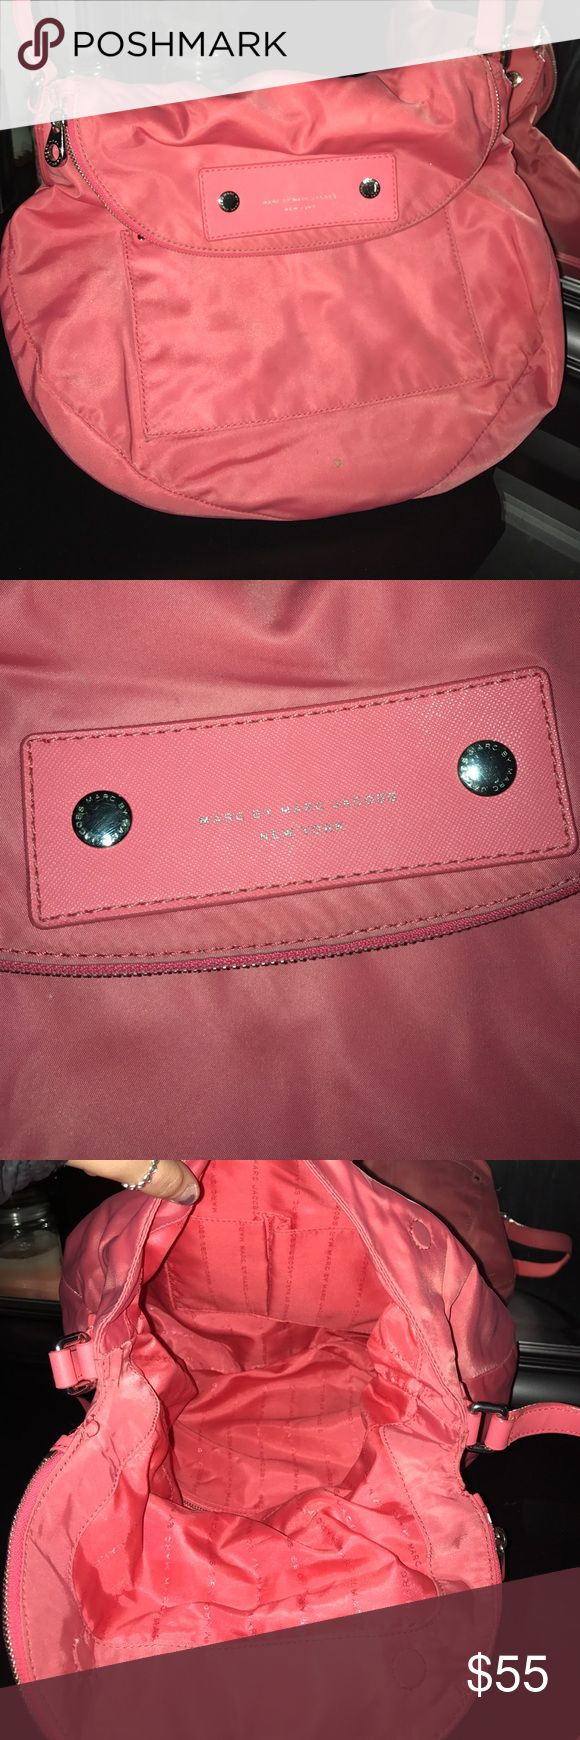 Marc Jacobs Purse Selling my Marc Jacobs pretty pink purse/sachet. This purse has so much room and is perfect for summertime! I am selling because I have too many purses just like it!! Price is negotiable(: Marc Jacobs Bags Satchels